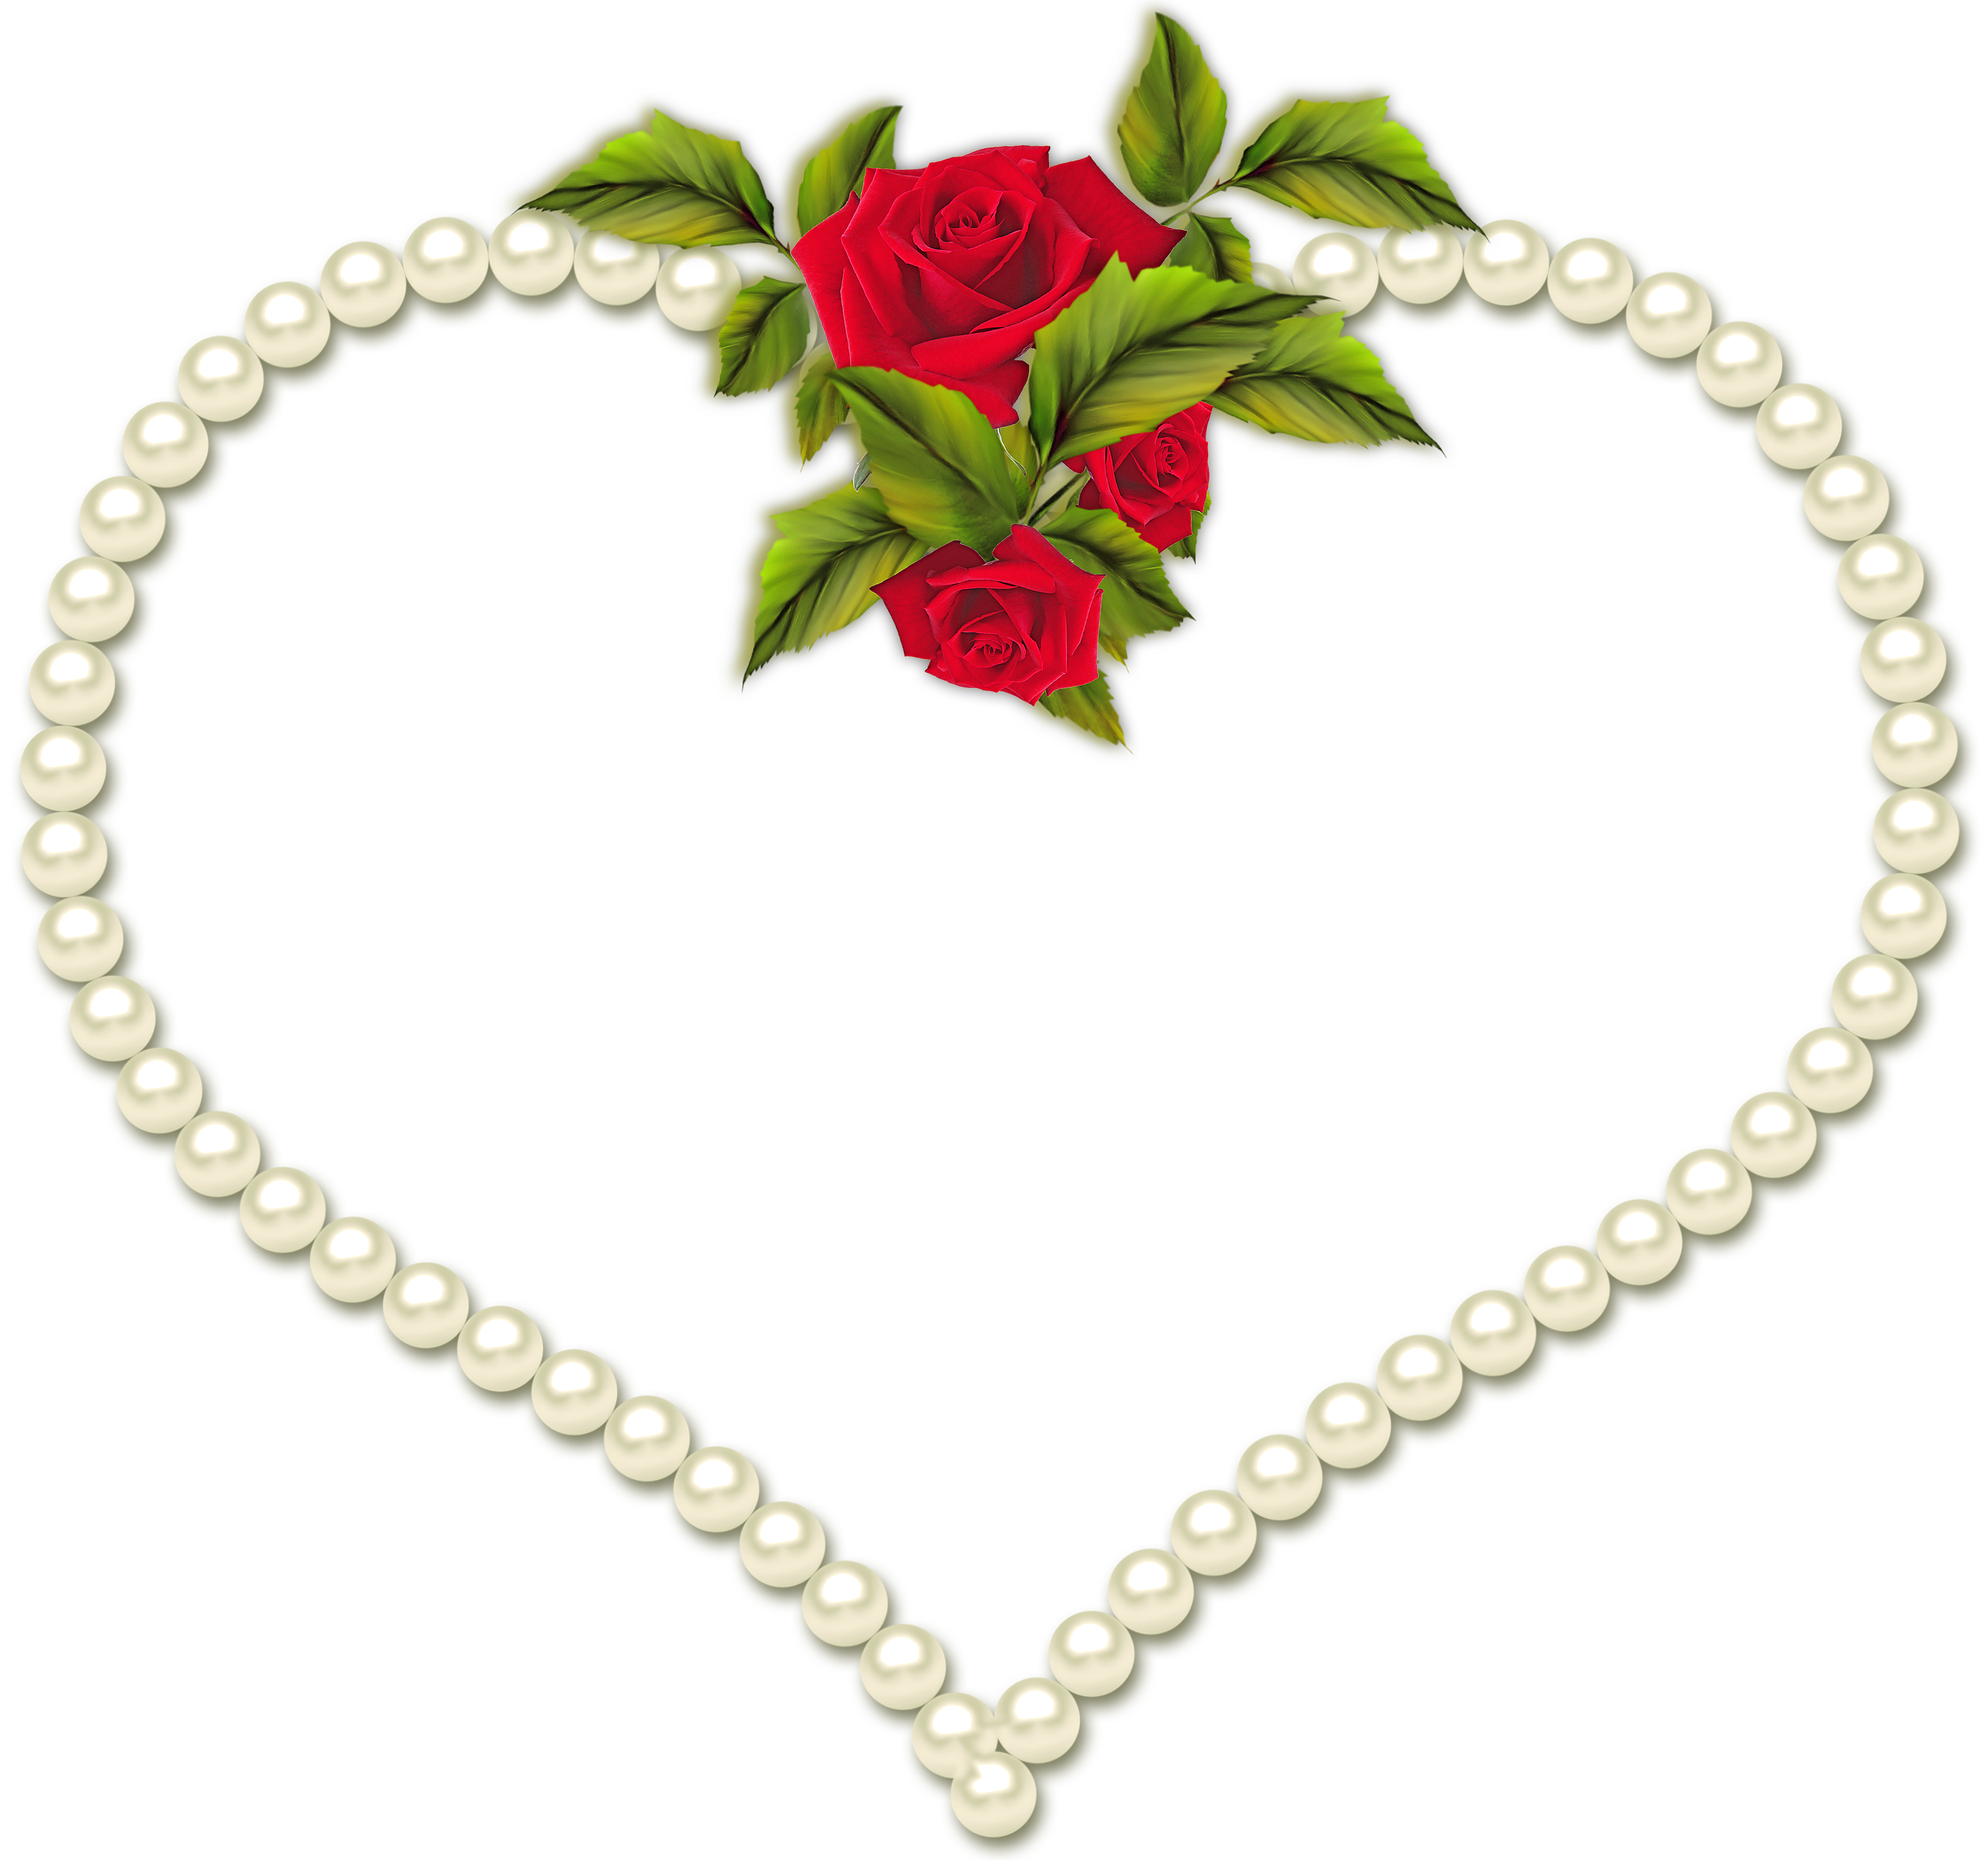 Pearl frame png. Transparent heart with roses